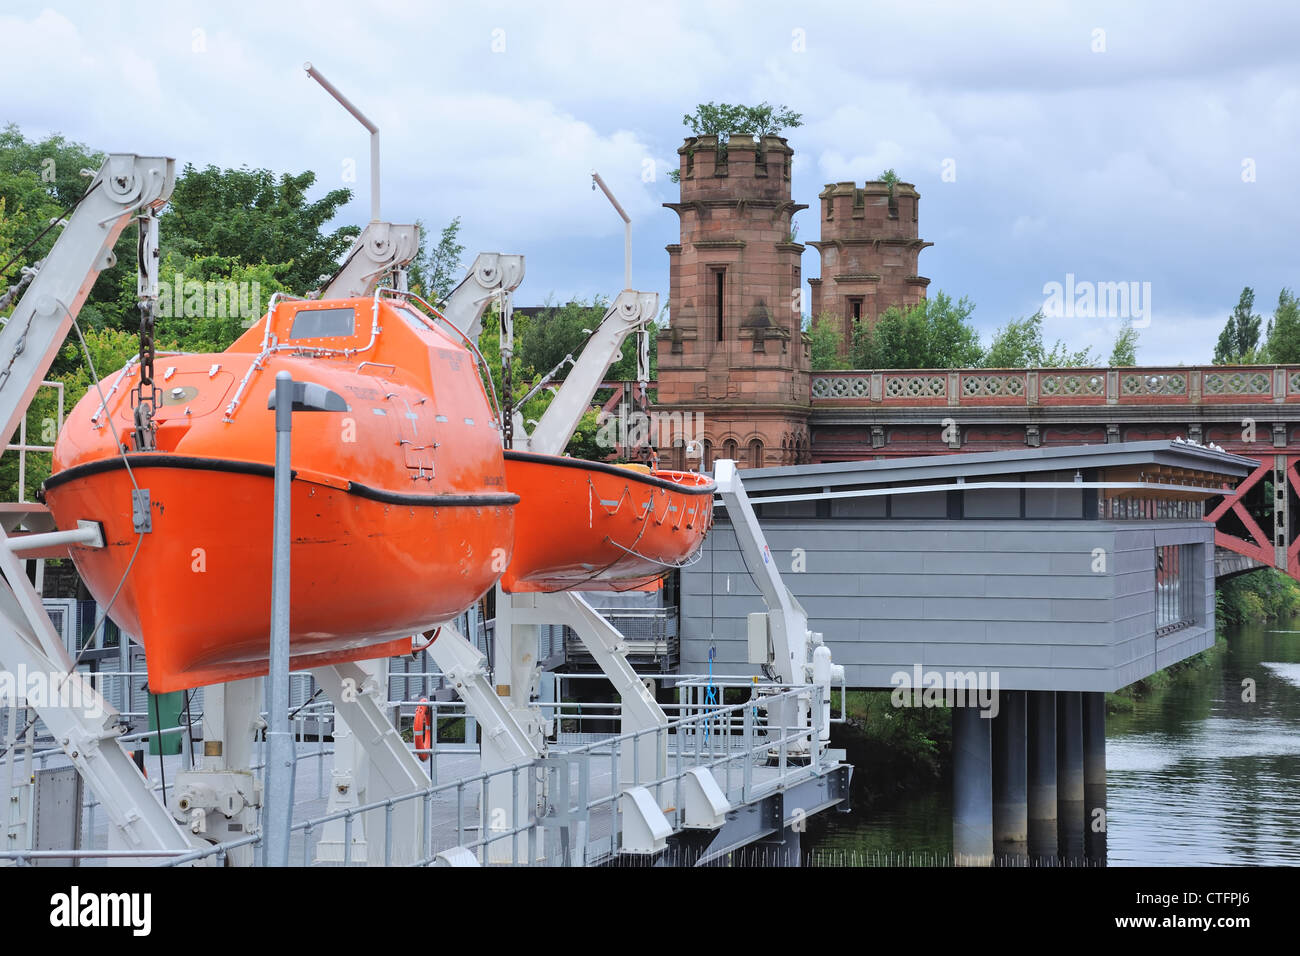 This survival pod can be seen on the River Clyde at the Glasgow College of Nautical Studies. - Stock Image